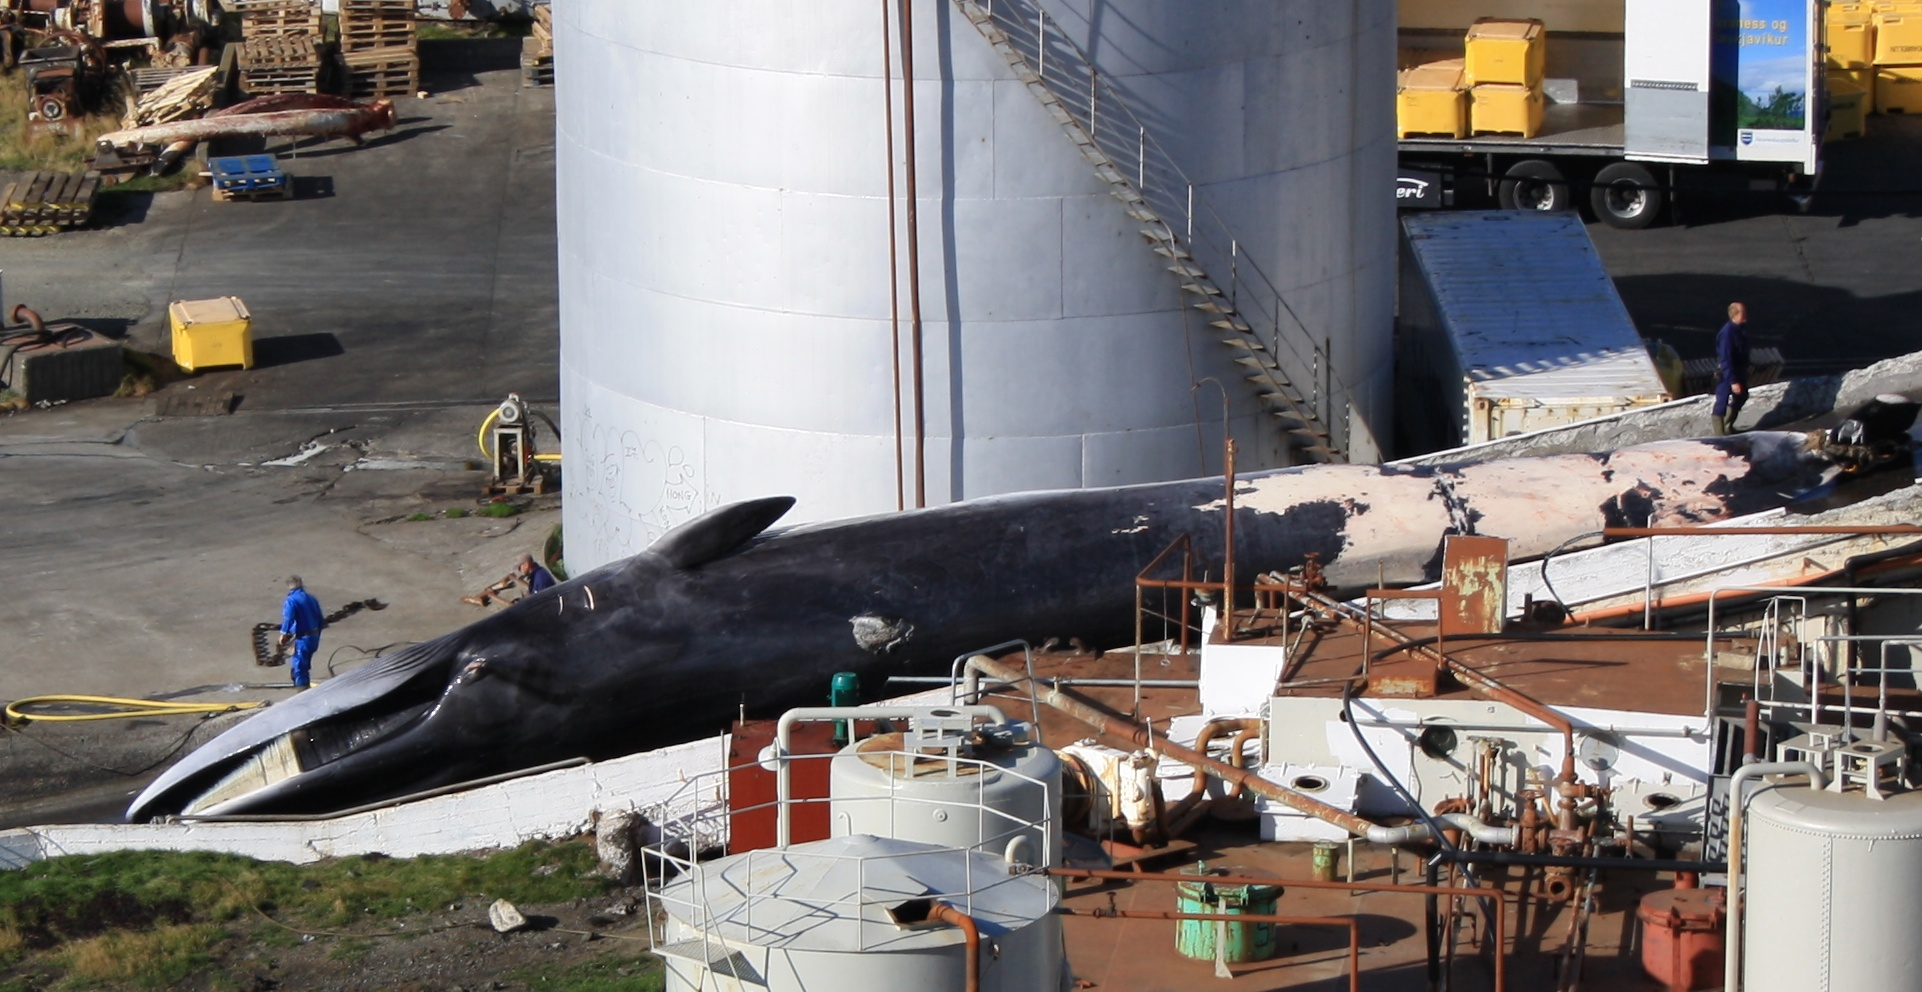 the cruel methods of the whaling Whilst whaling is often described as a 'numbers game', the whaling debate is not just about numbers and conservation, but also about animal suffering the method used to hunt and kill whales is fundamentally and unacceptably cruel.